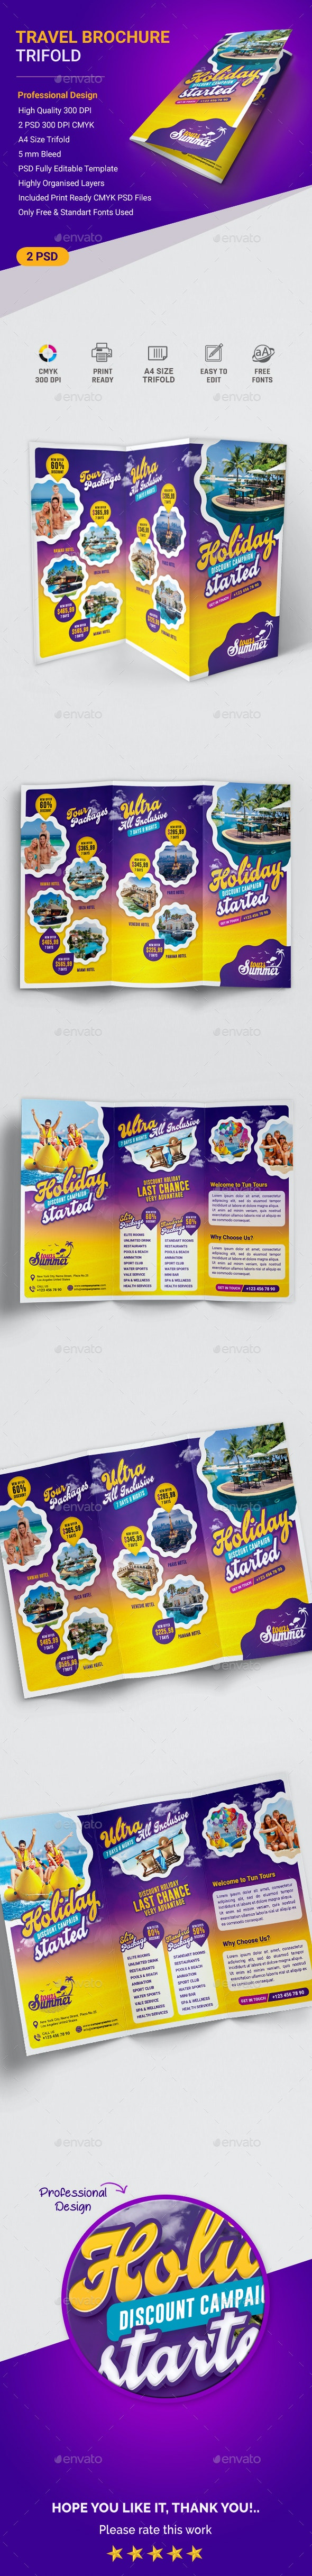 Travel Trifold Brochure - Brochures Print Templates